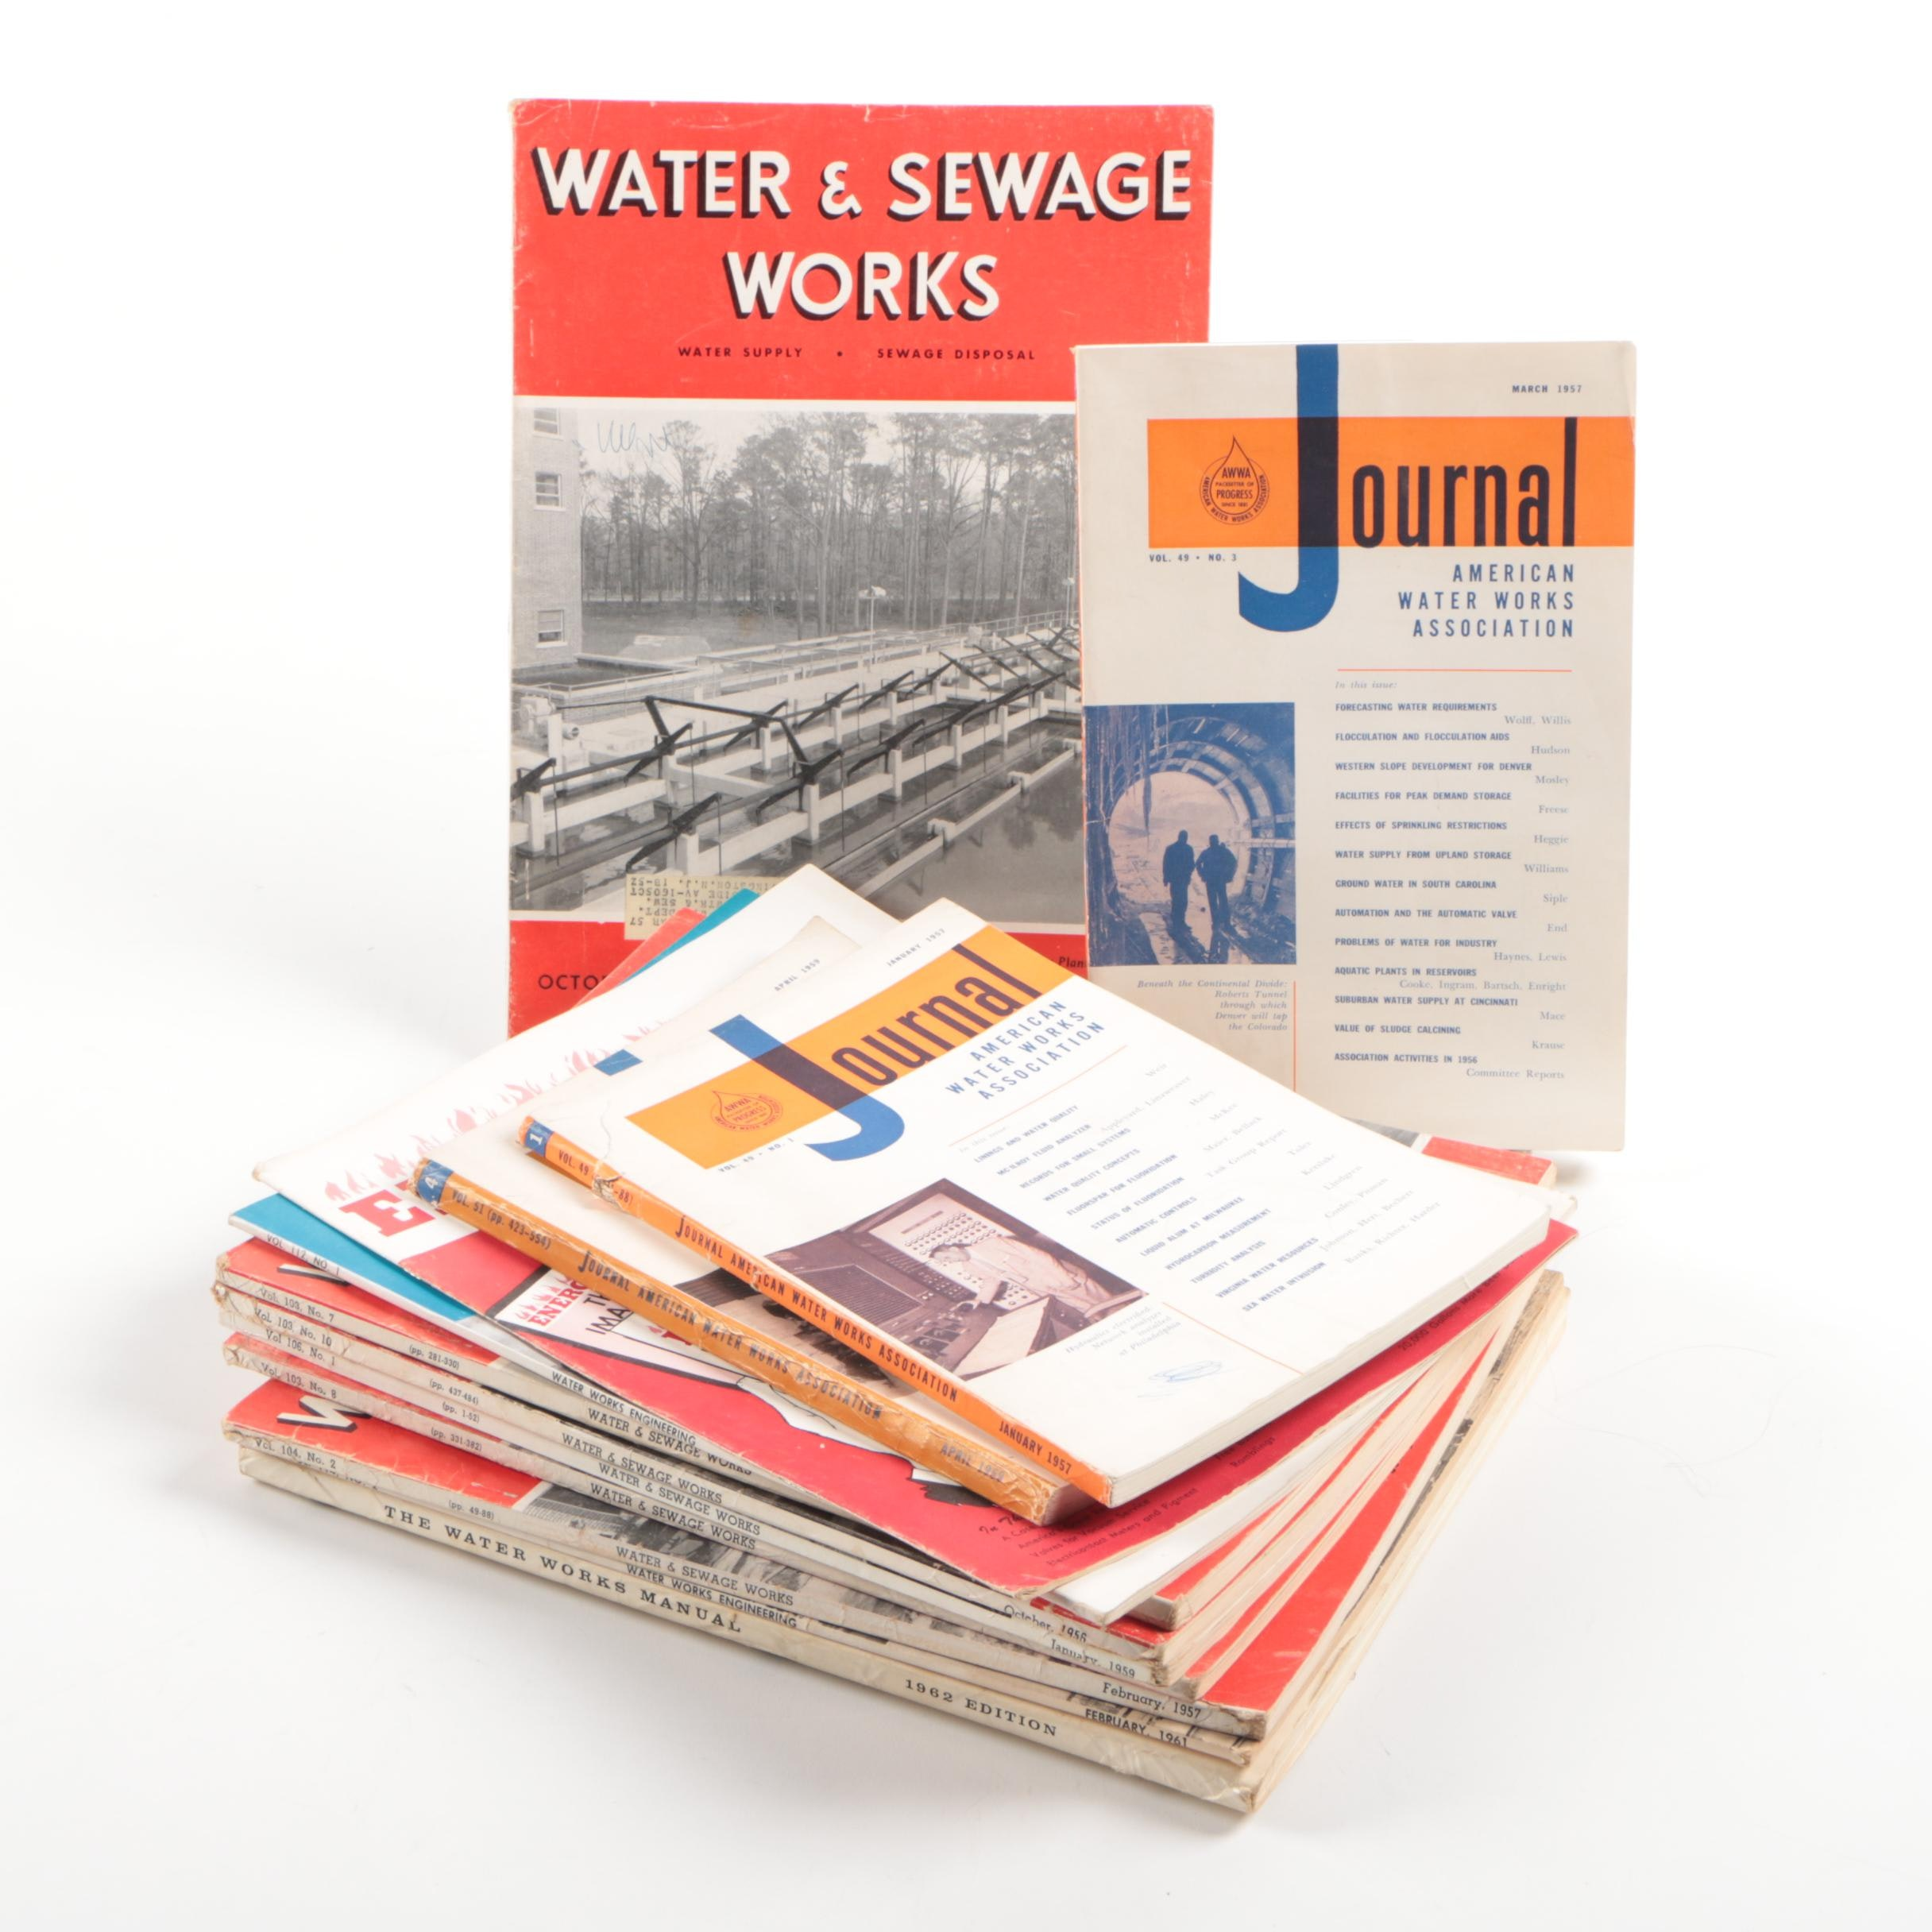 Assortment of Water & Sewage Engineering Books and Journals